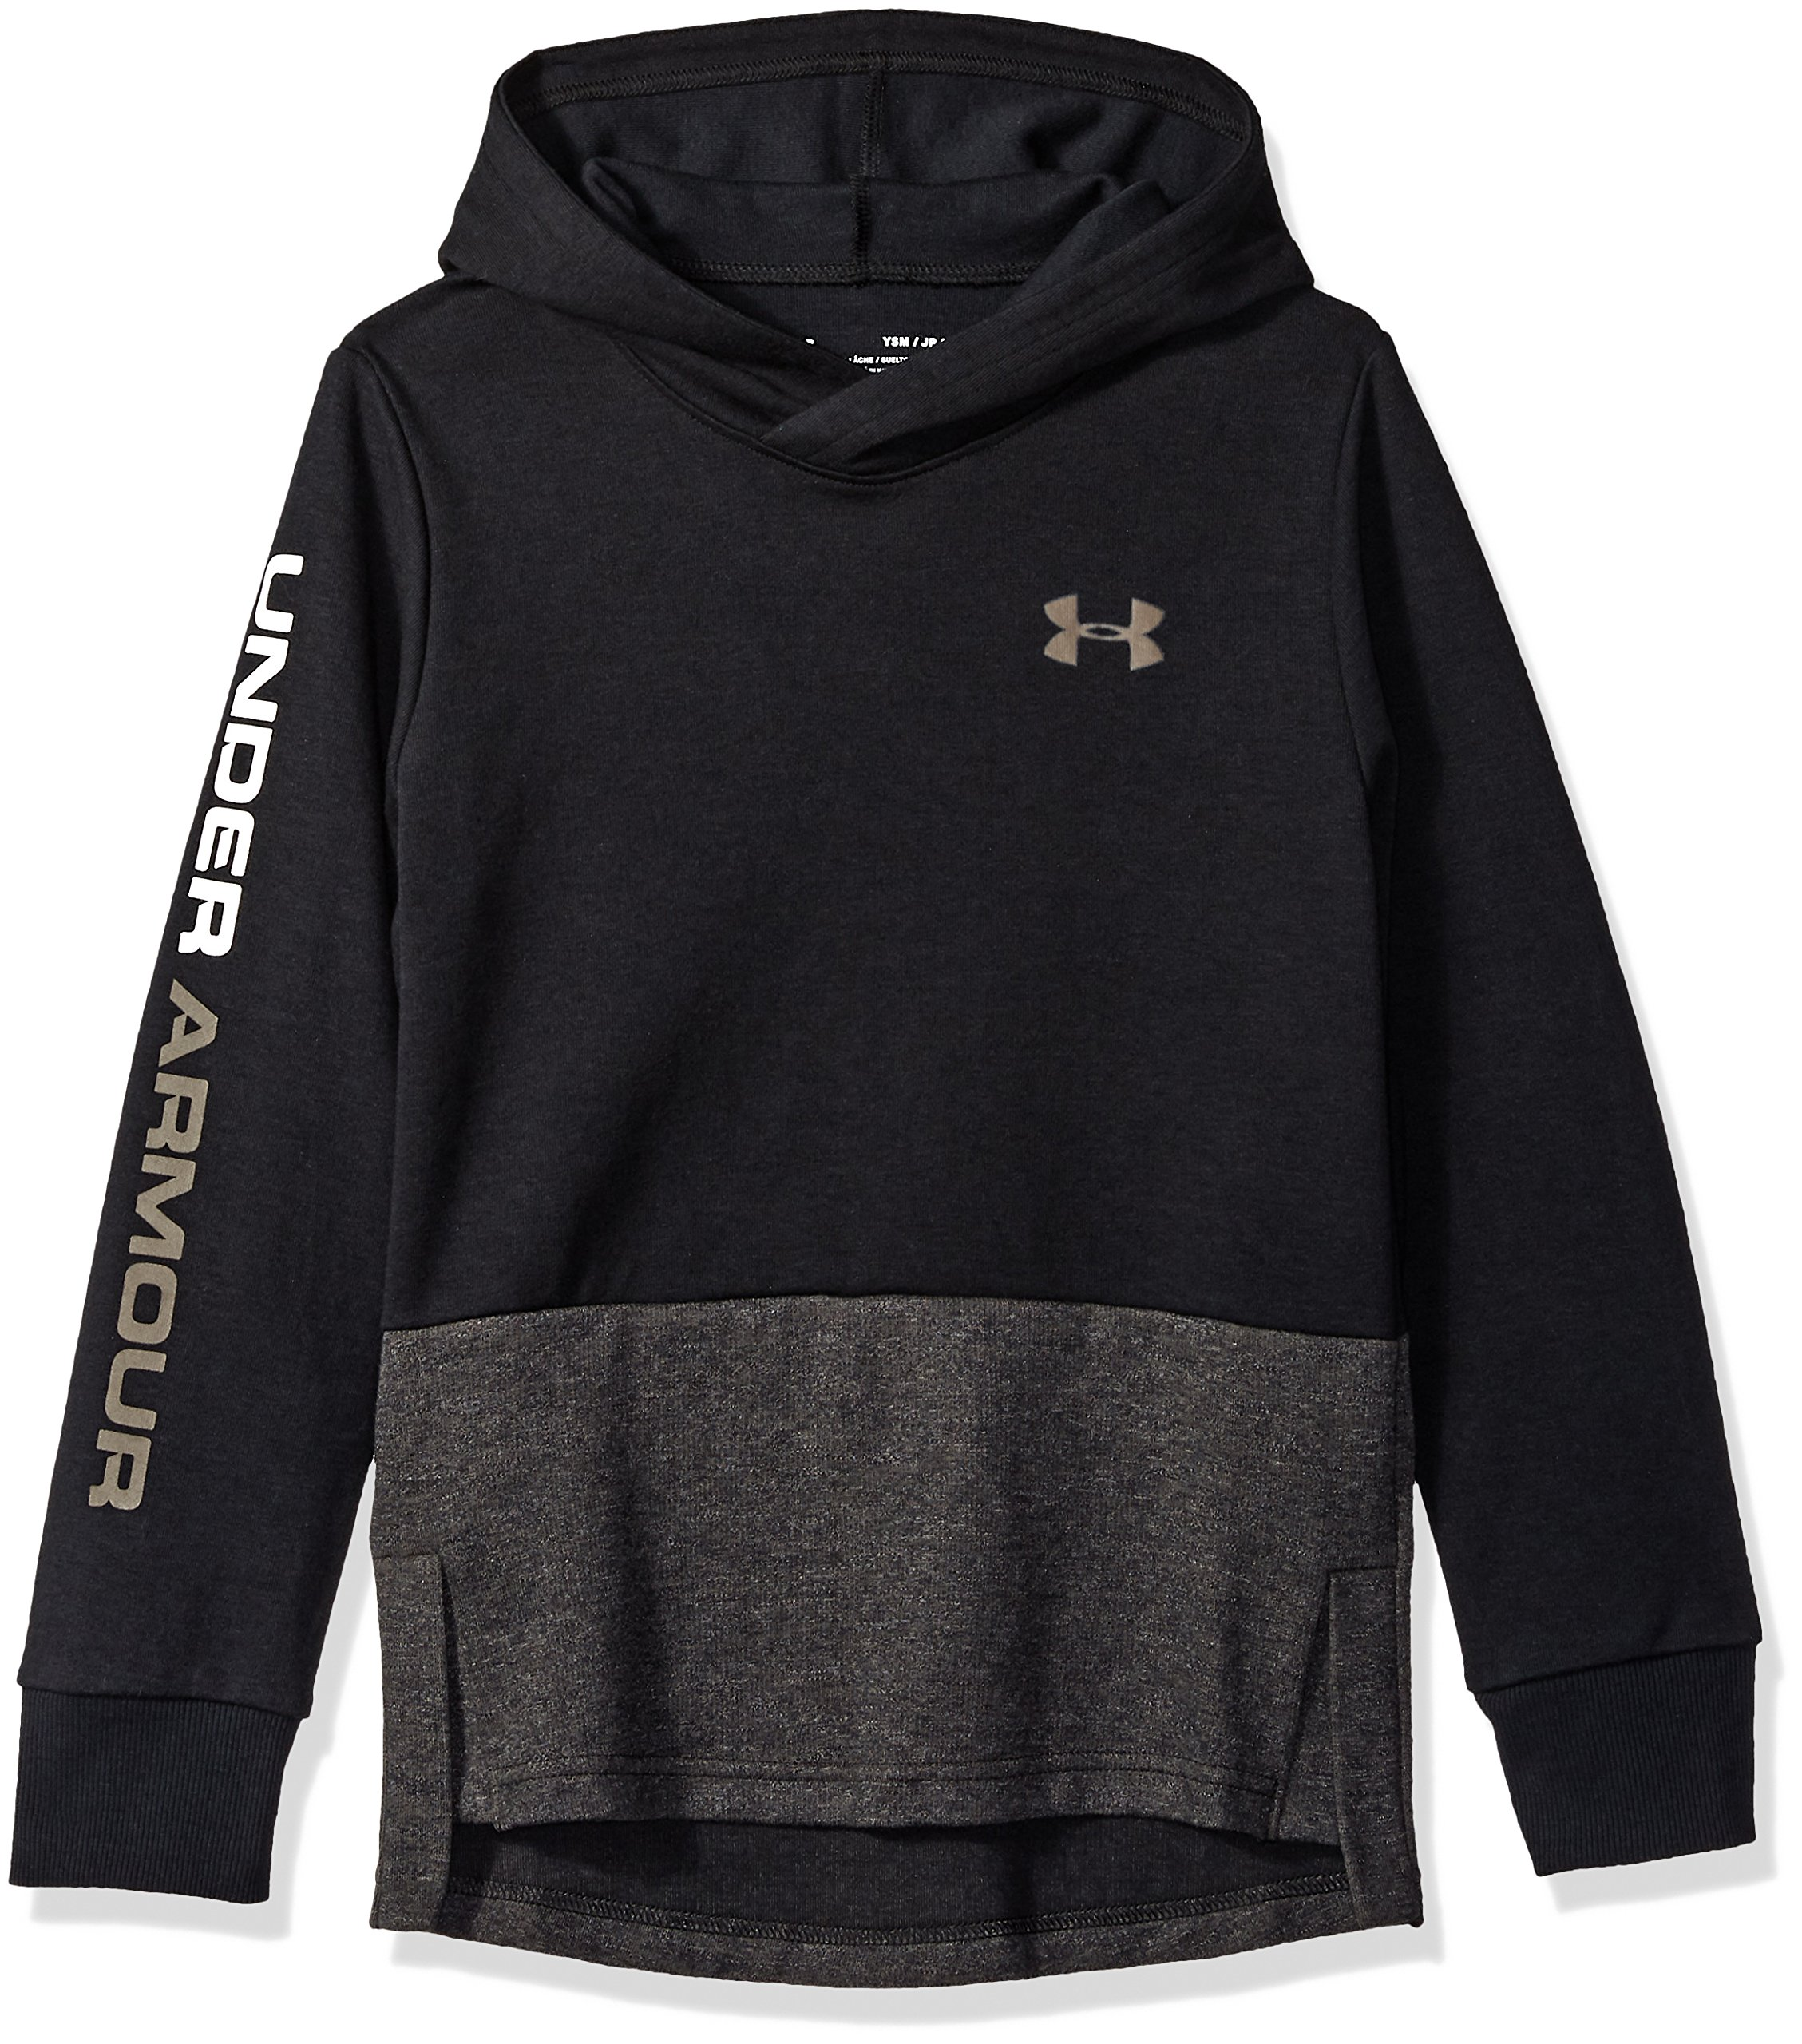 Under Armour Boys Double Knit Hoodie, Black (001)/Fresh Clay, Youth Medium by Under Armour